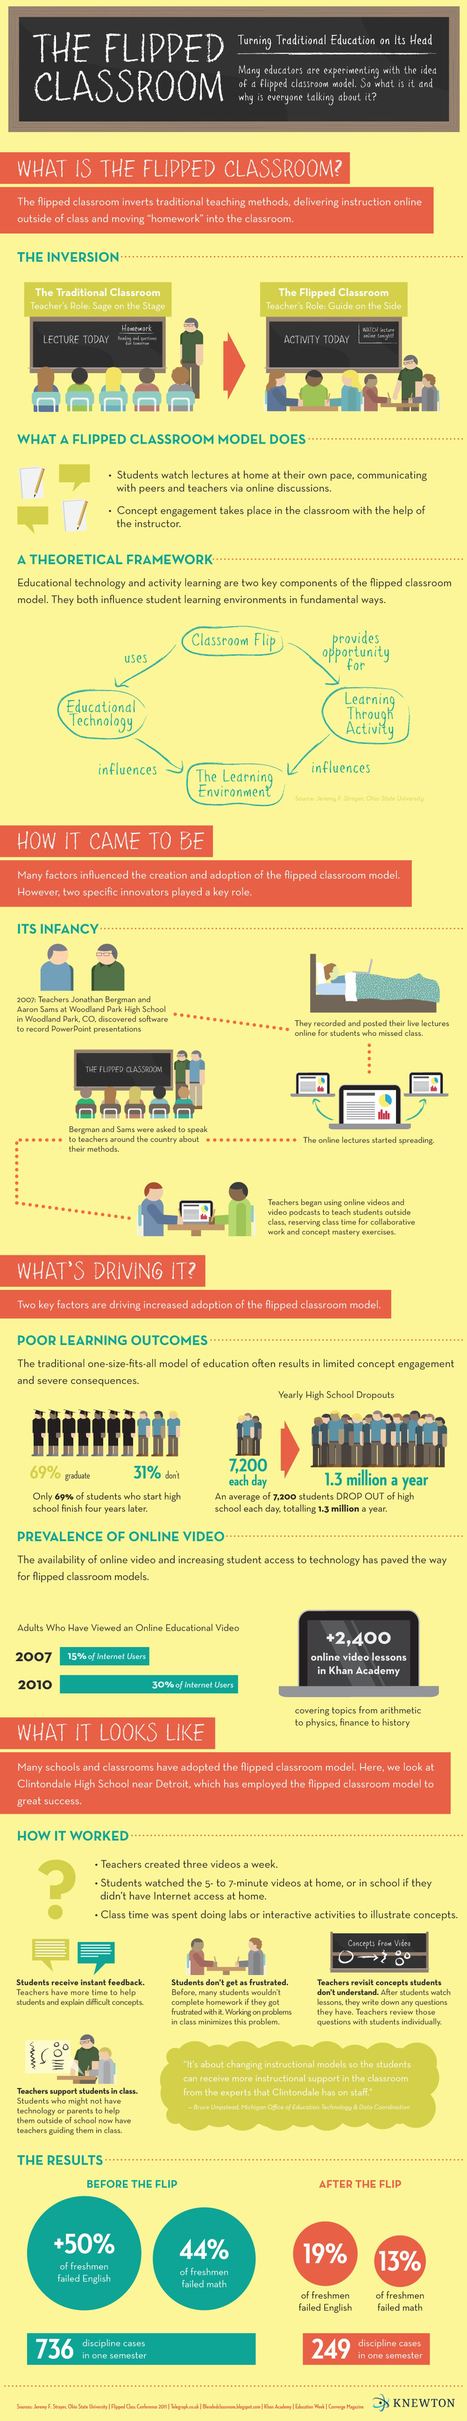 The Flipped Classroom Defined | EdTech | Scoop.it